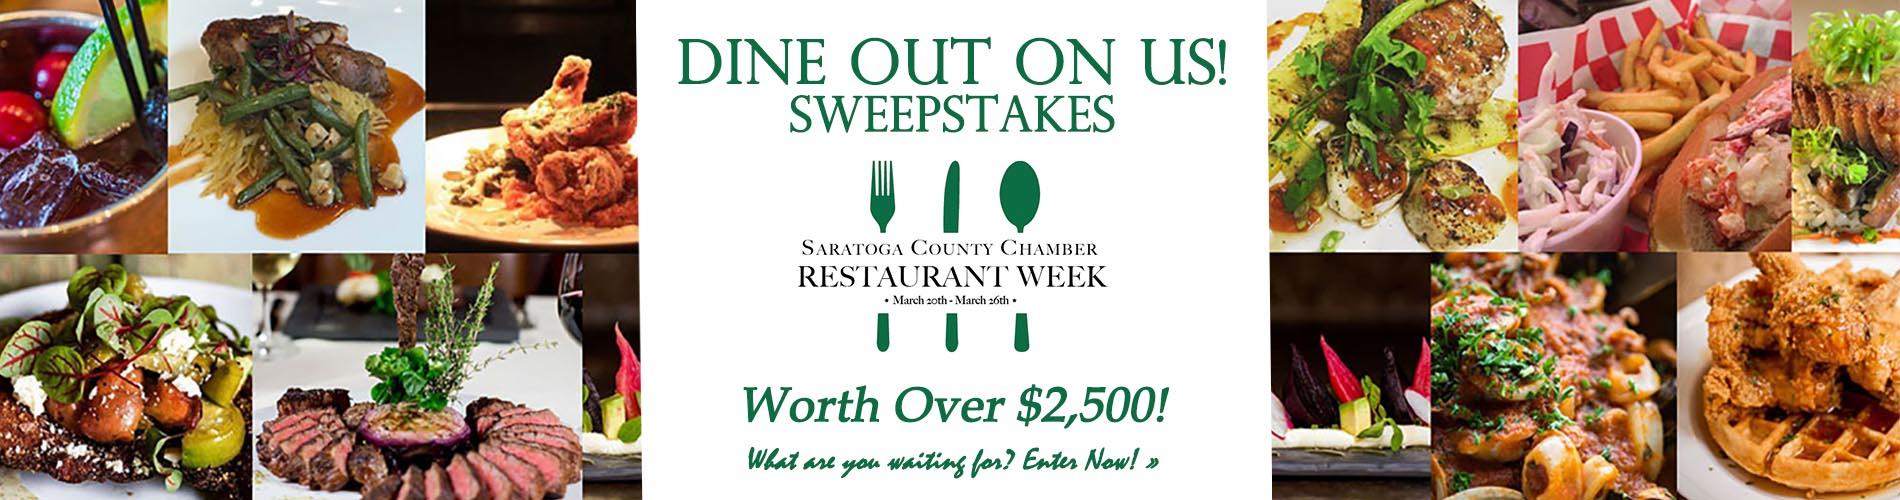 variety of plated food for restaurant week sweepstakes